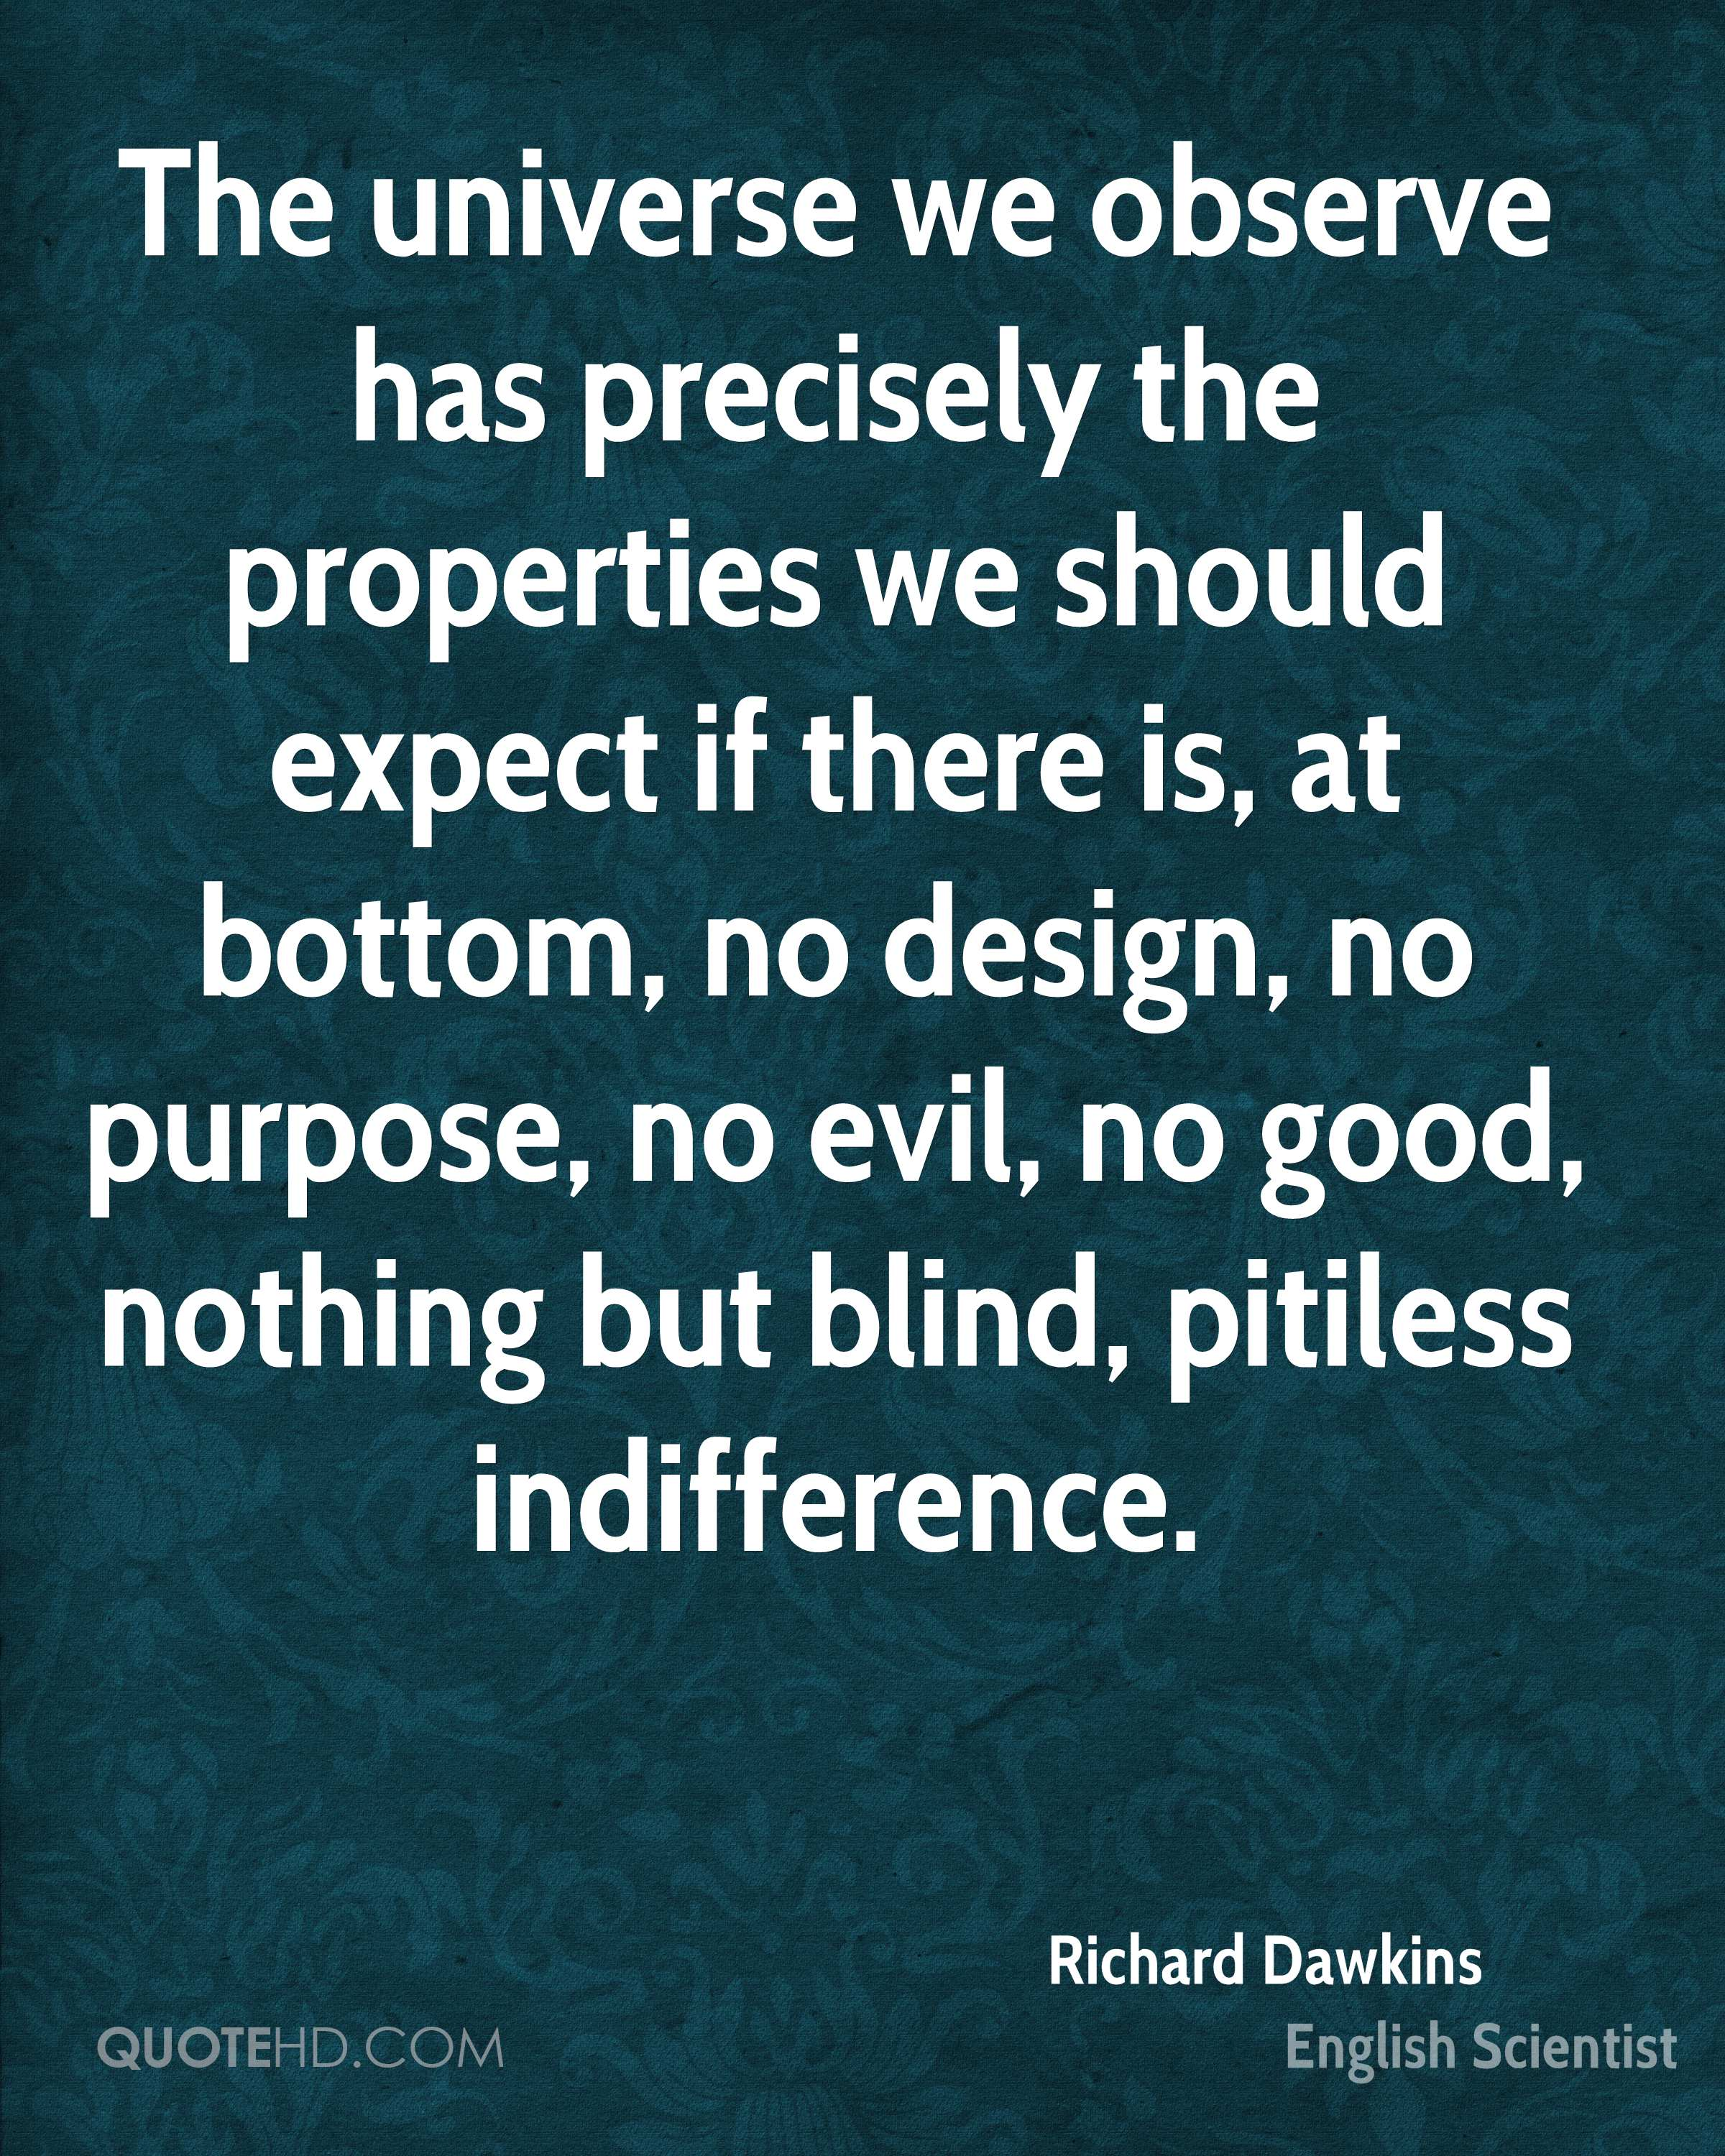 Indifference Quotes Richard Dawkins Design Quotes  Quotehd